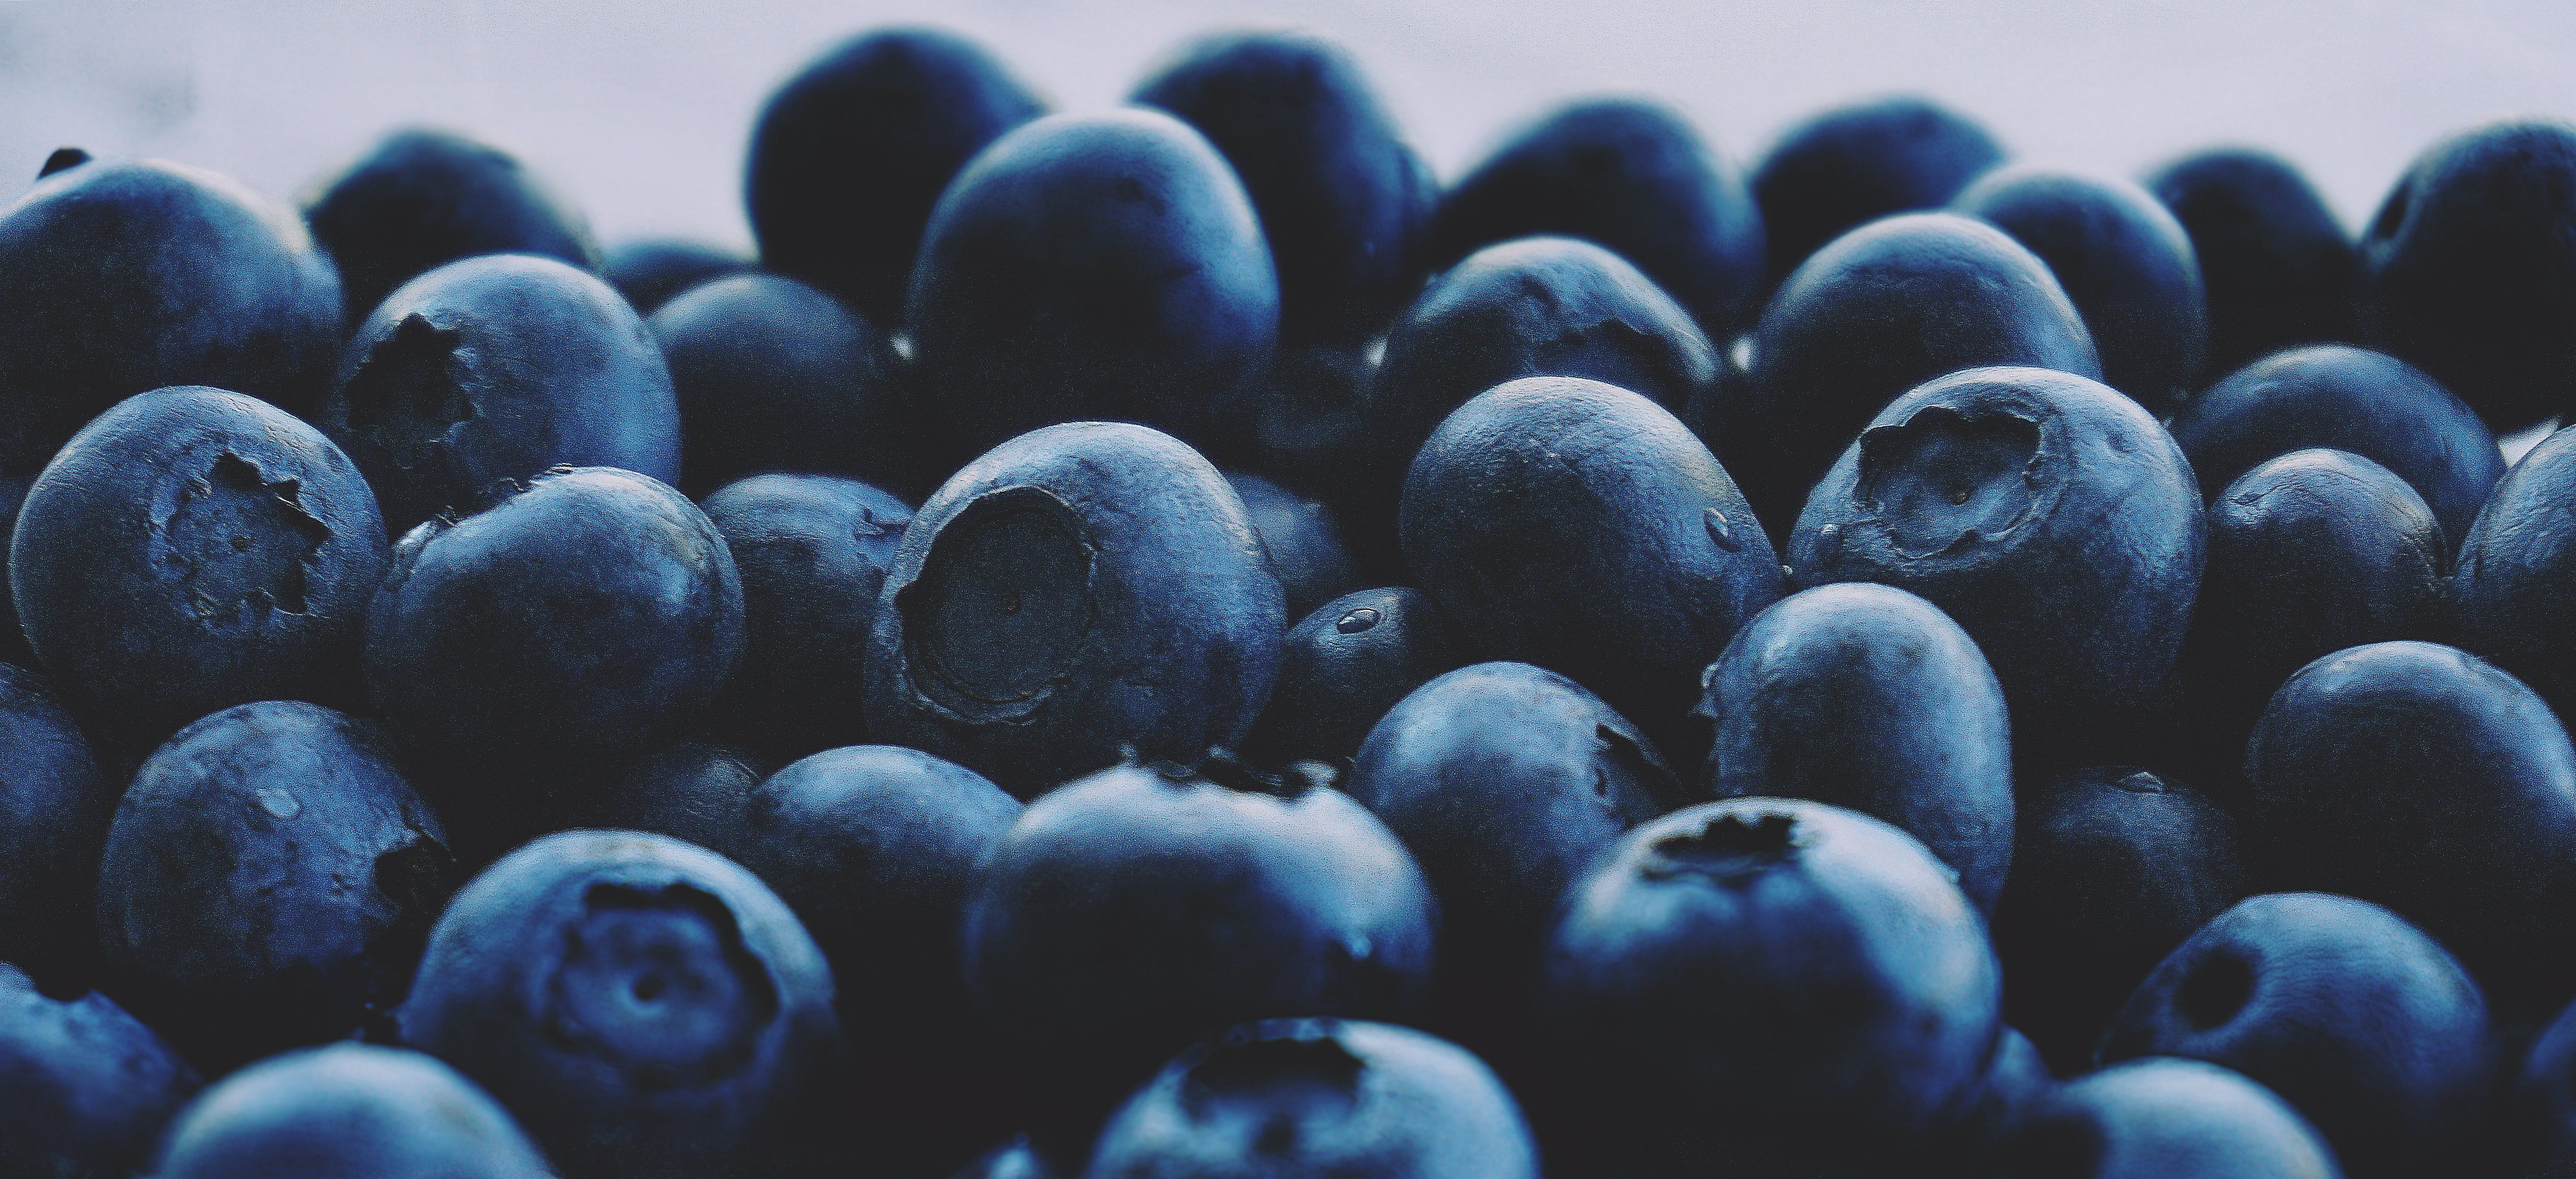 berries, blueberries, close-up